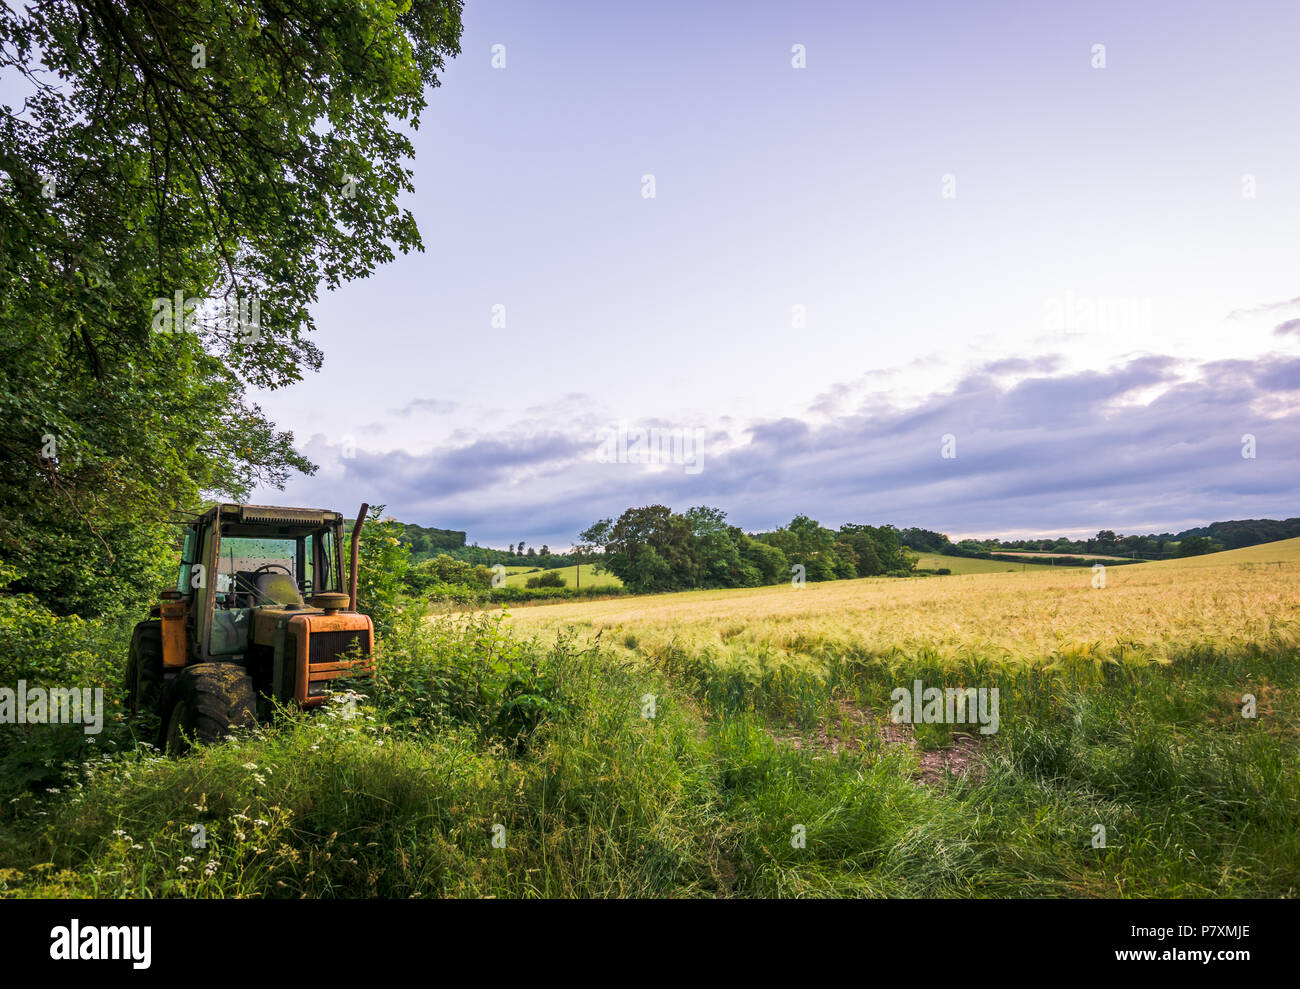 An abandoned tractor rusts by a field in the Chilterns - Stock Image